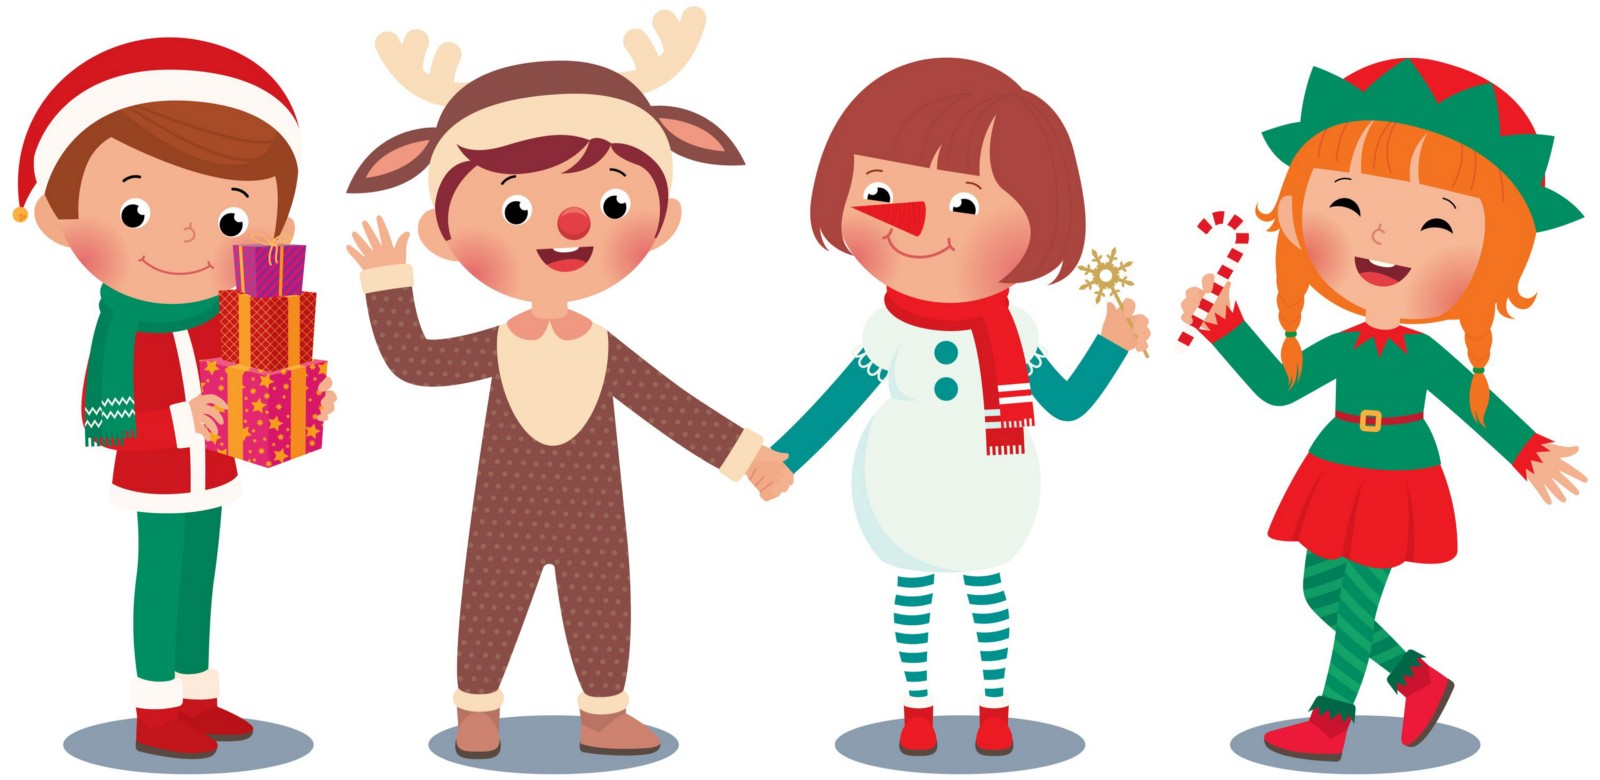 Children in Christmas costume characters celebrate Christmas